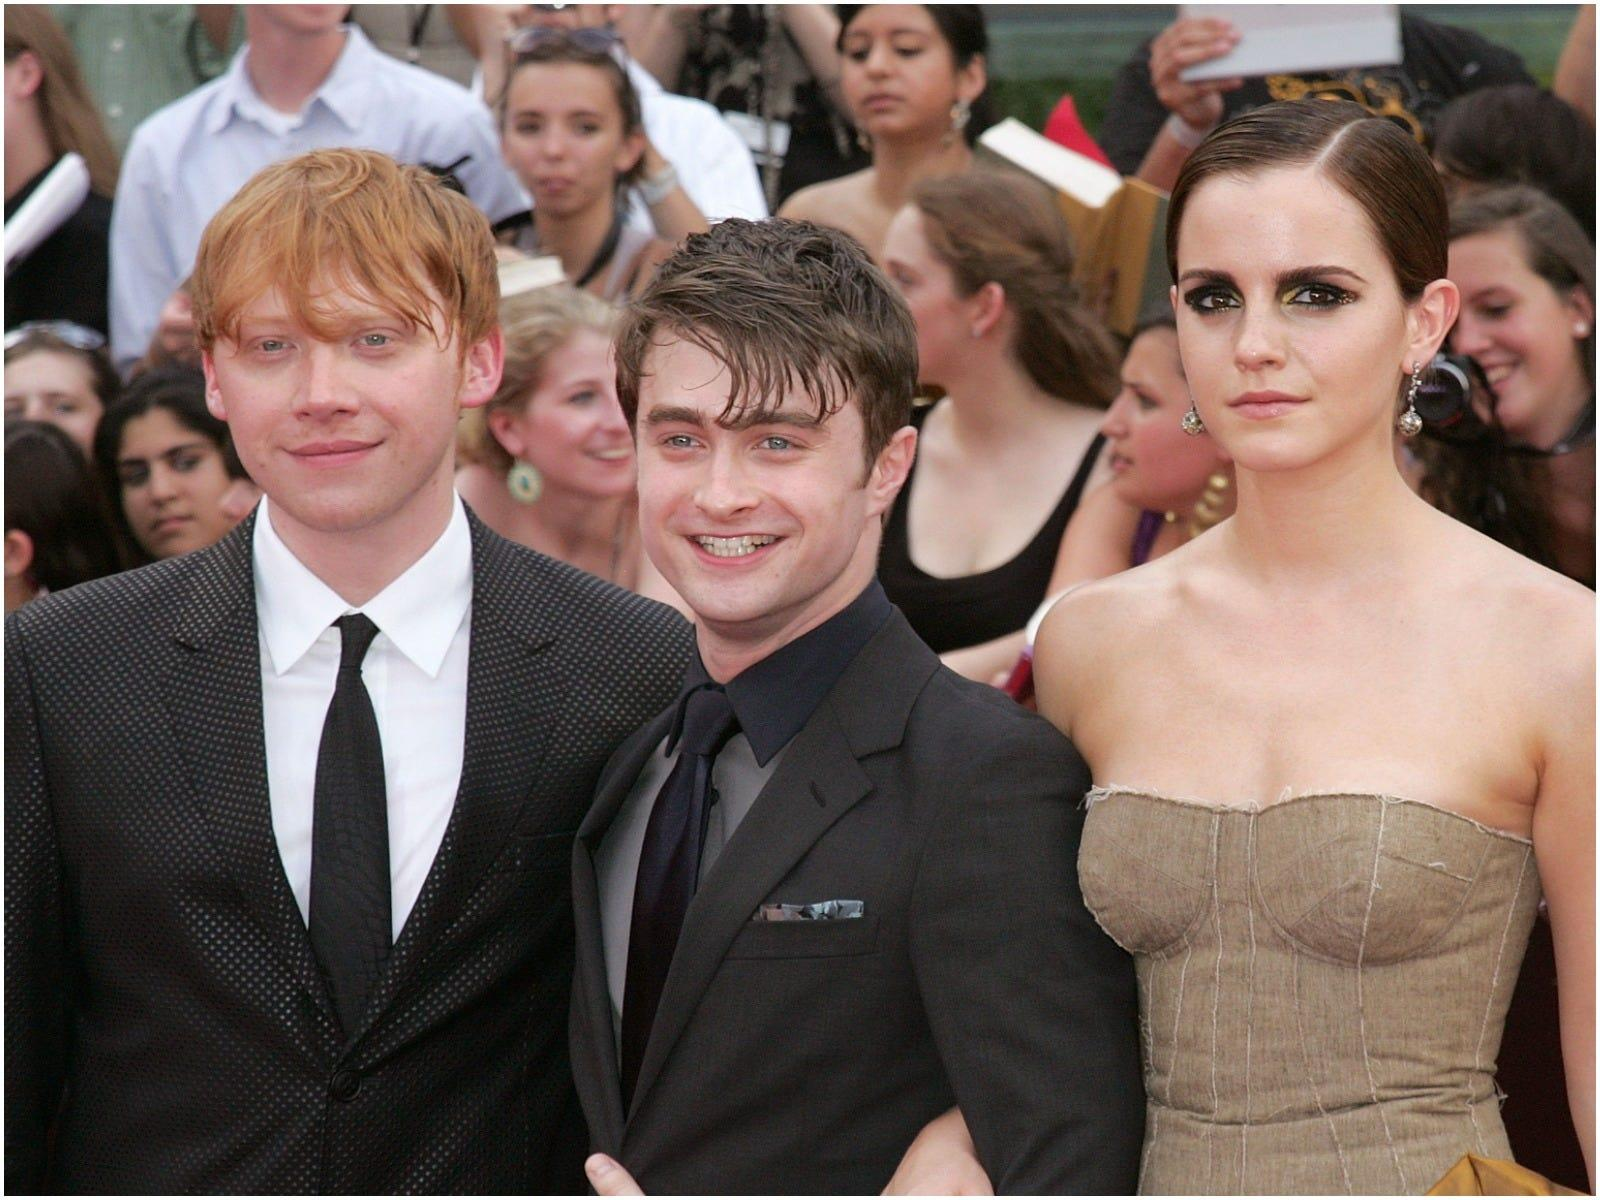 Rupert Grint says fame is the one thing he, Emma Watson, and Daniel Radcliffe never talk about together